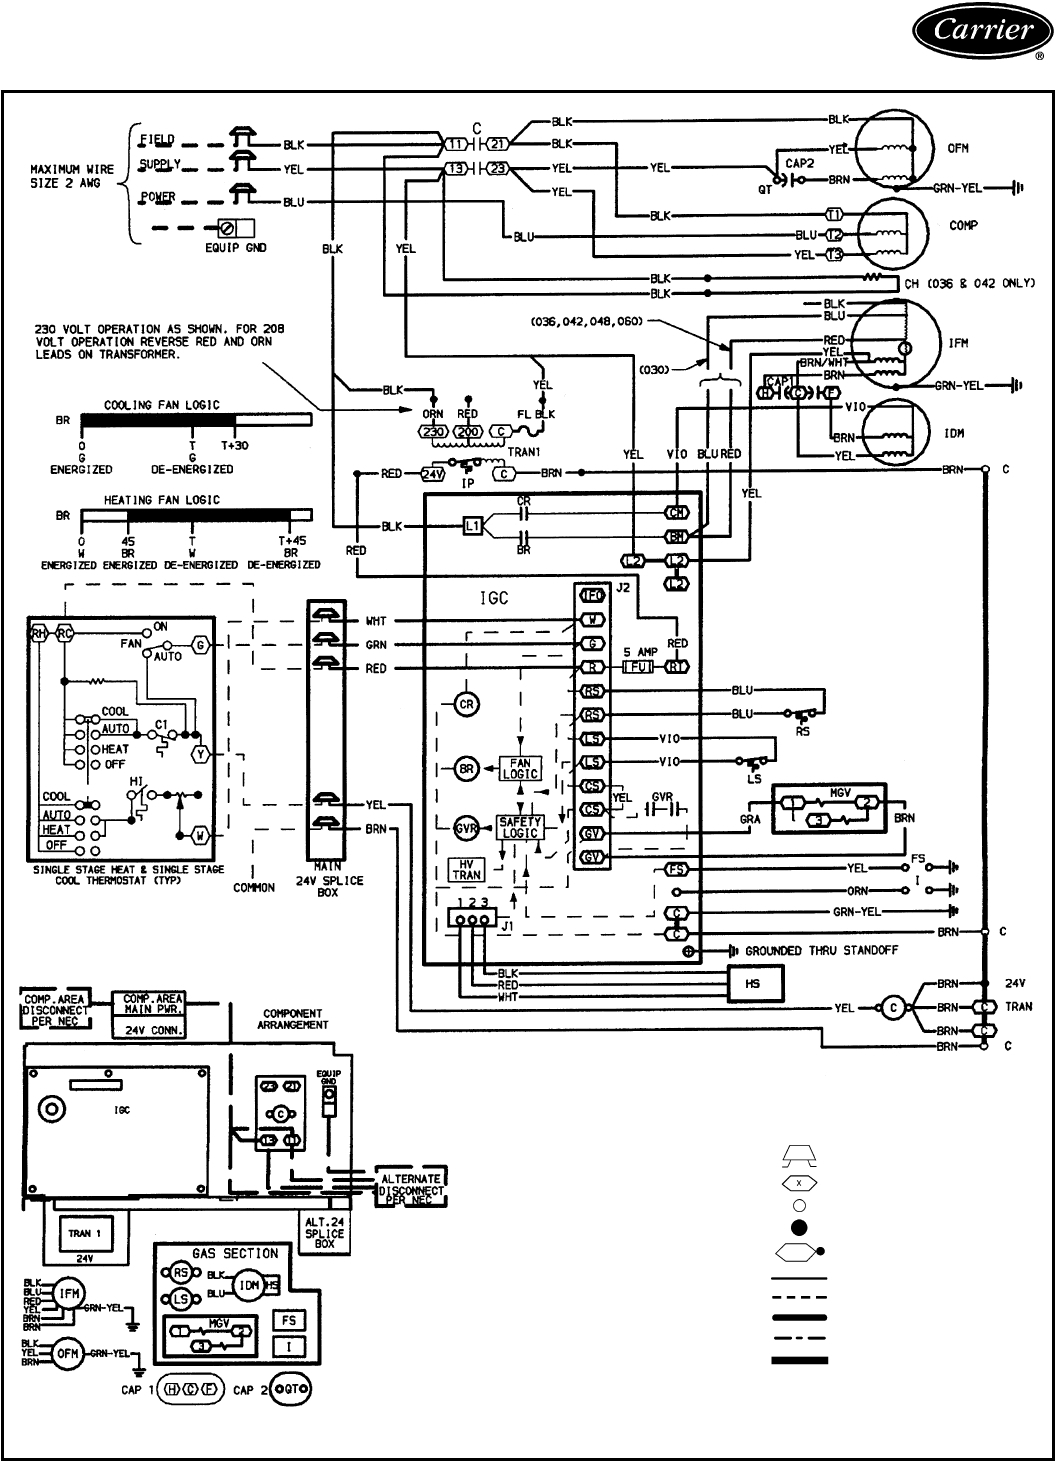 carrier furnace wiring diagram Download-Carrier Furnace Wiring Diagram Download 13-a